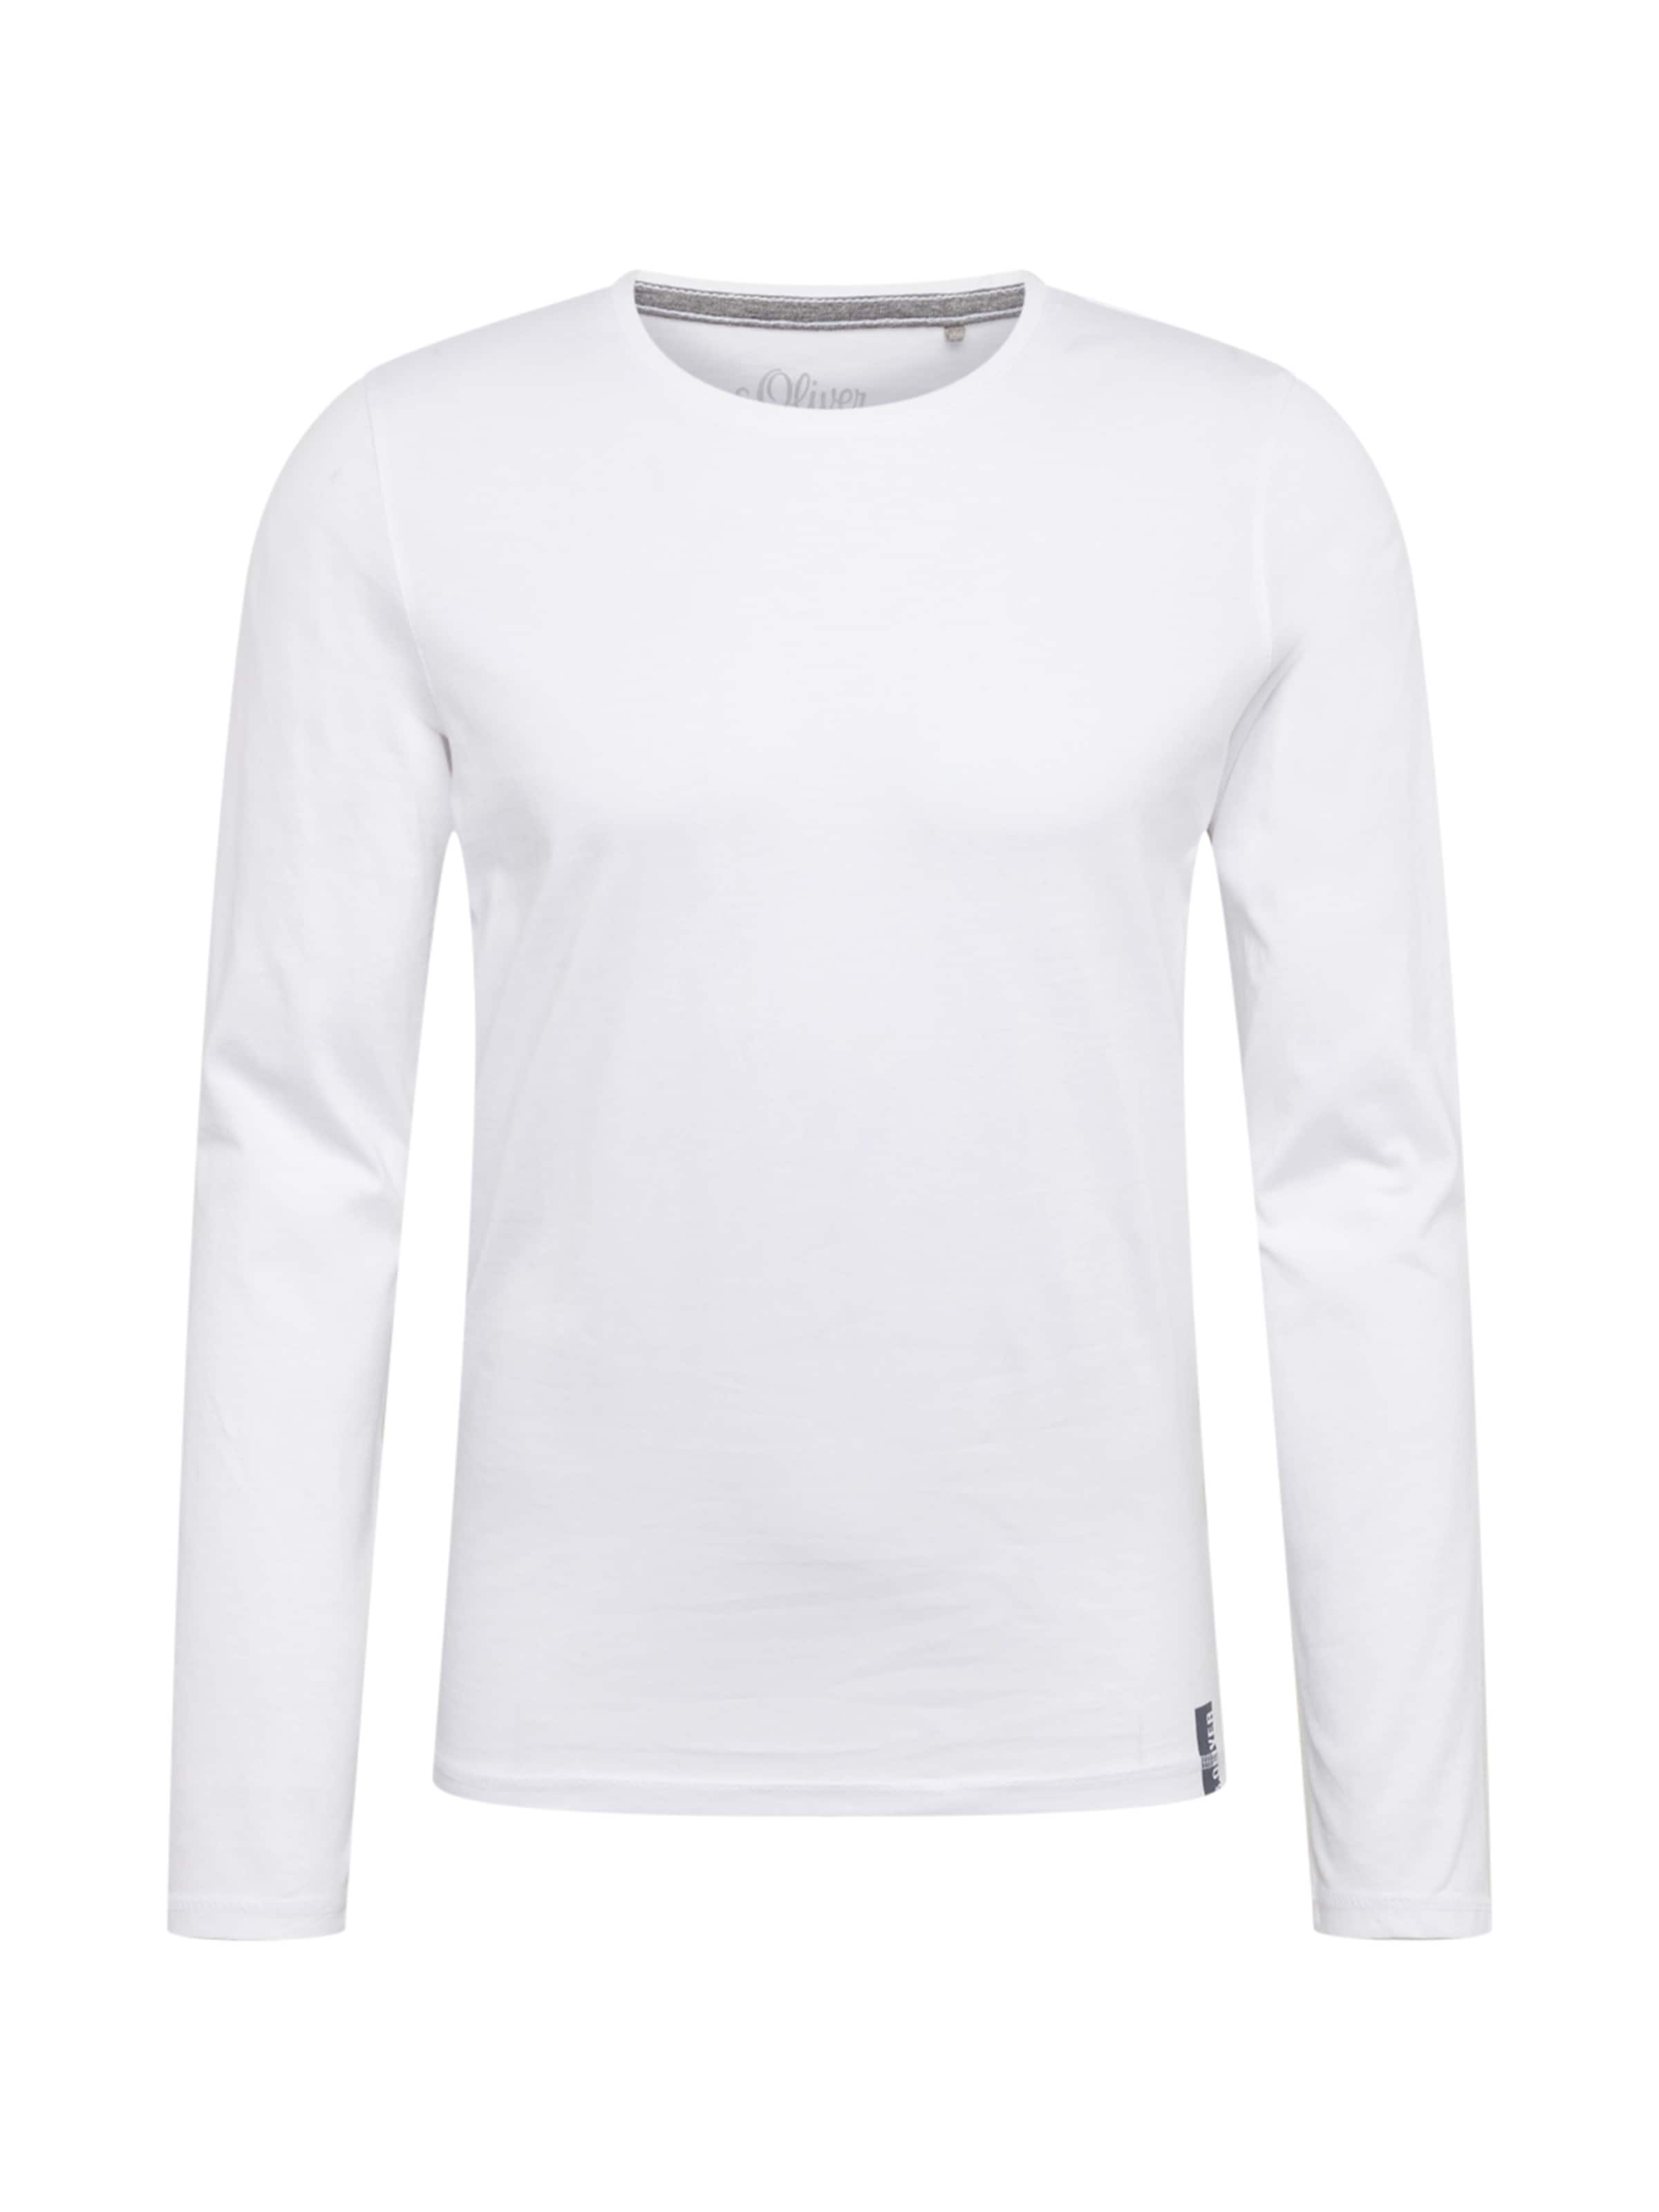 Label shirt oliver En T Red S Blanc tCdrxsQh